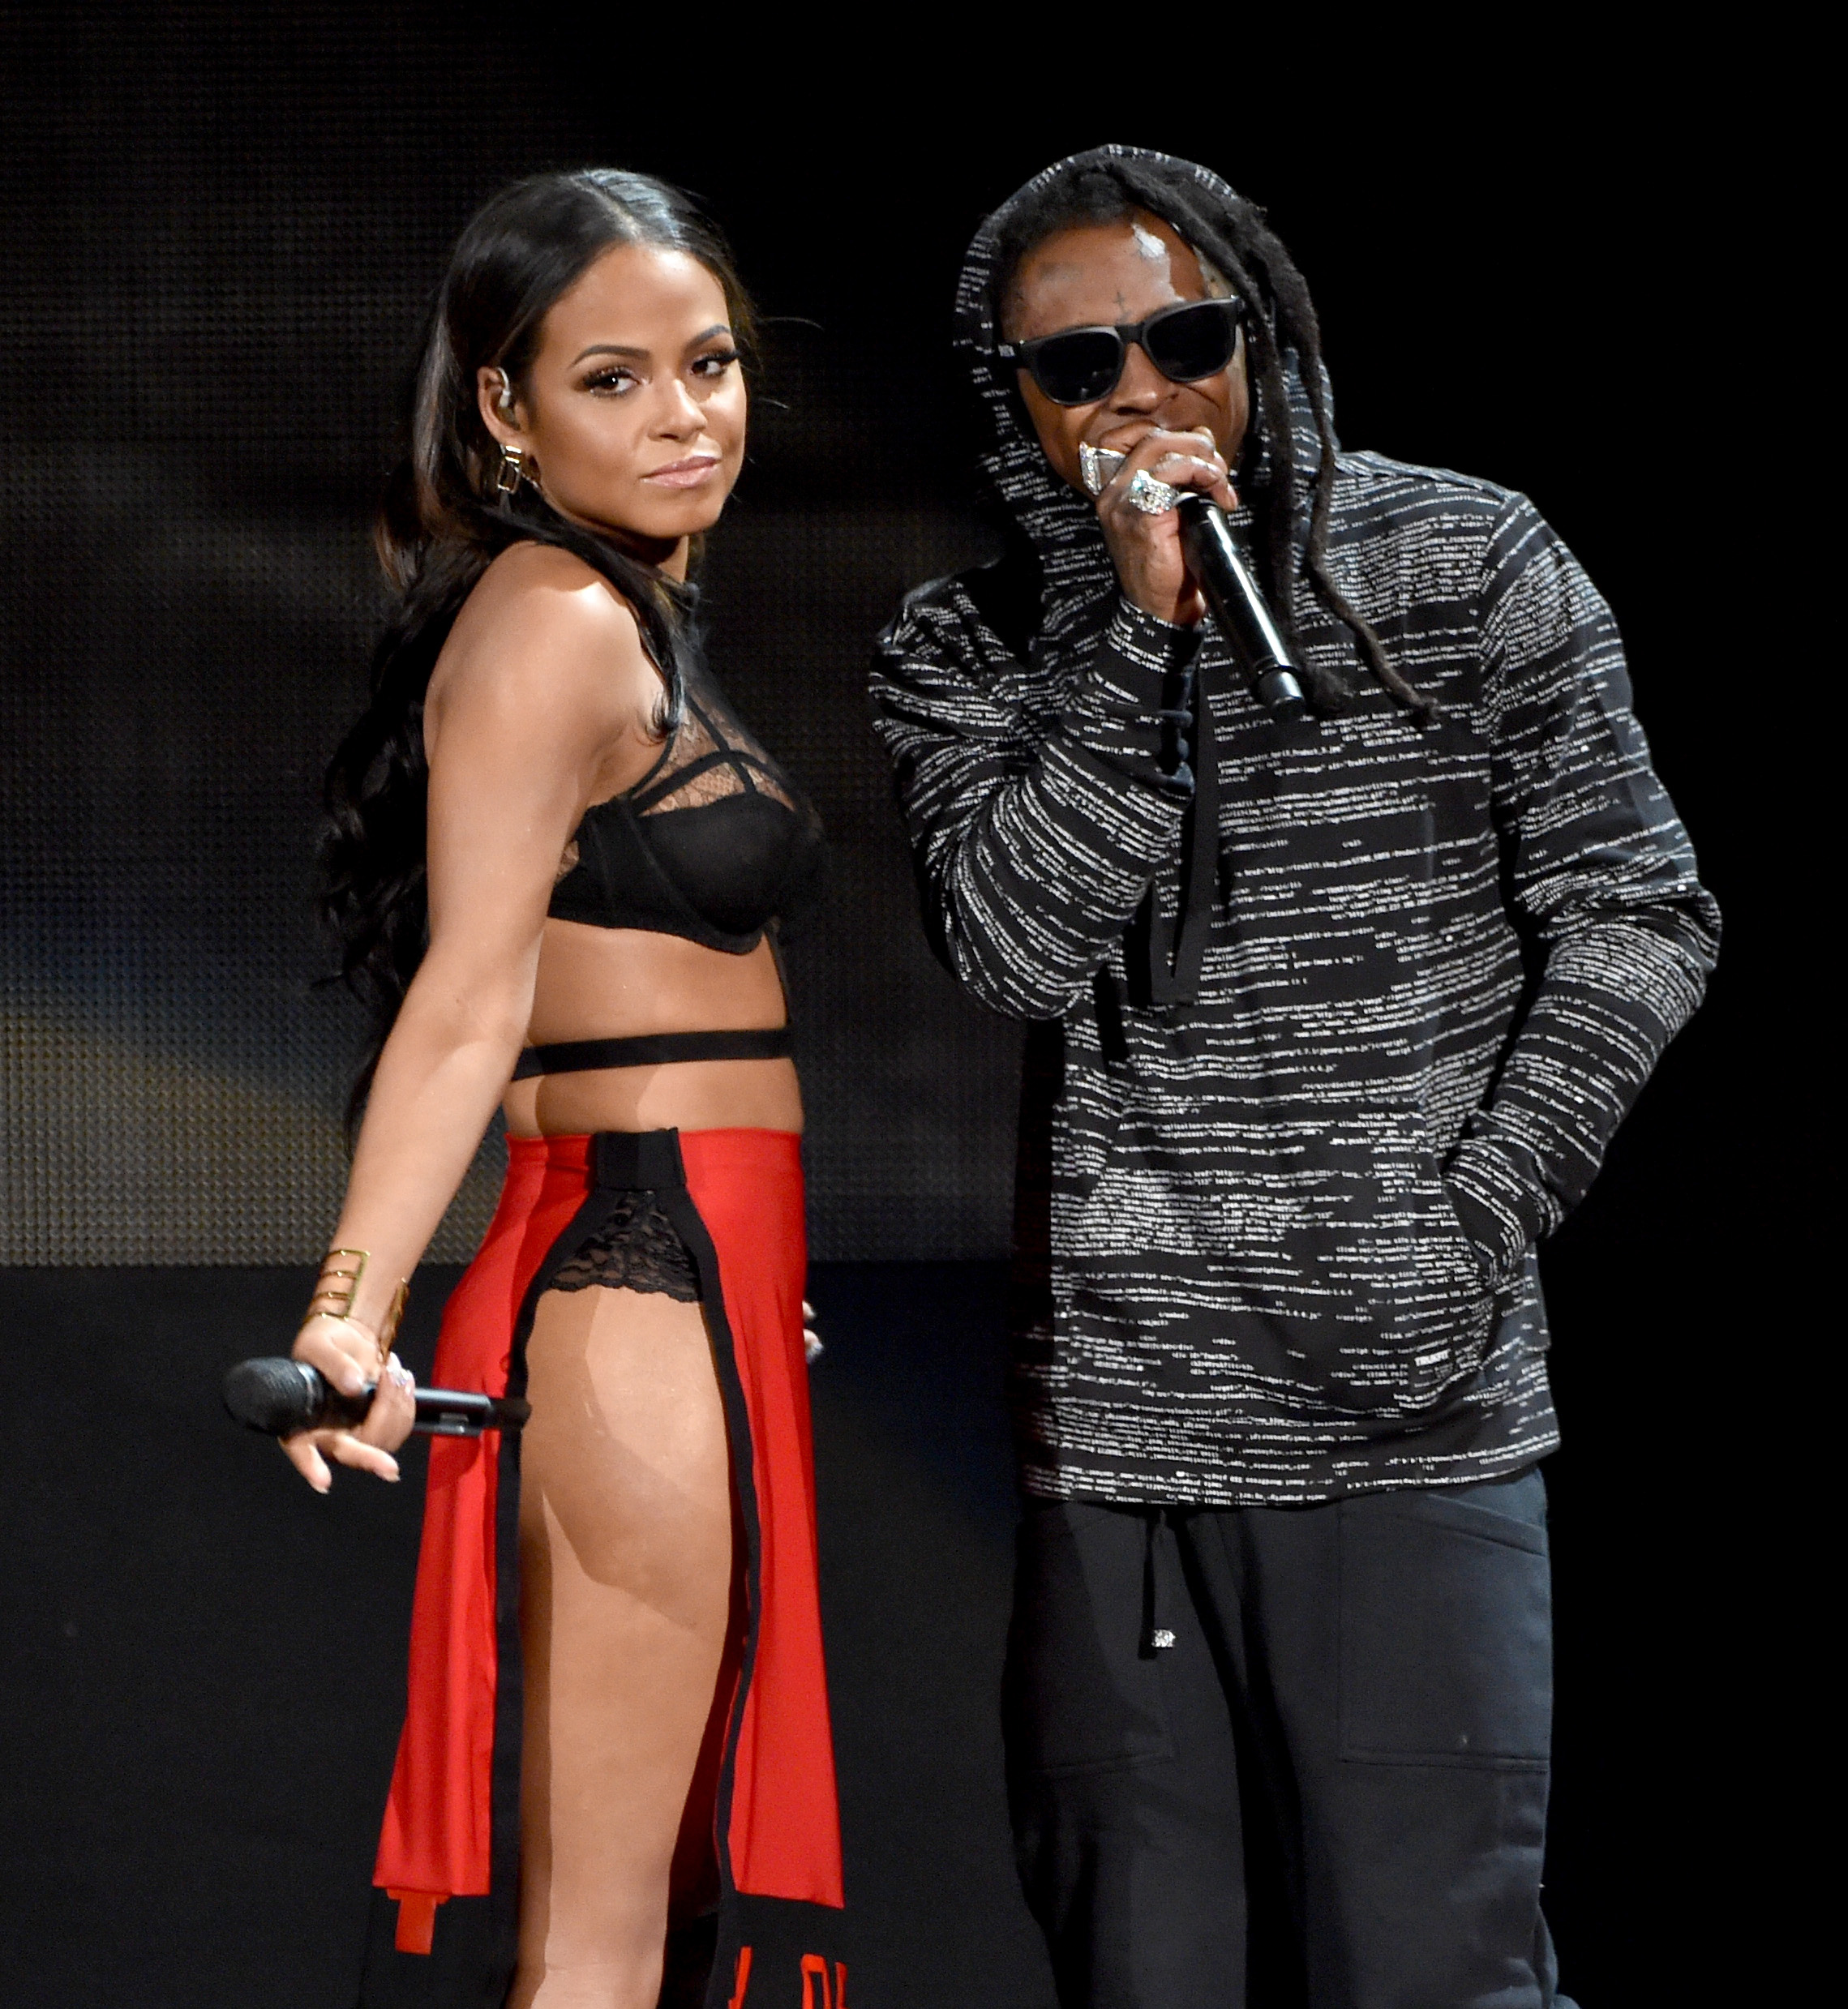 Christina Milian and Lil Wayne on stage American M